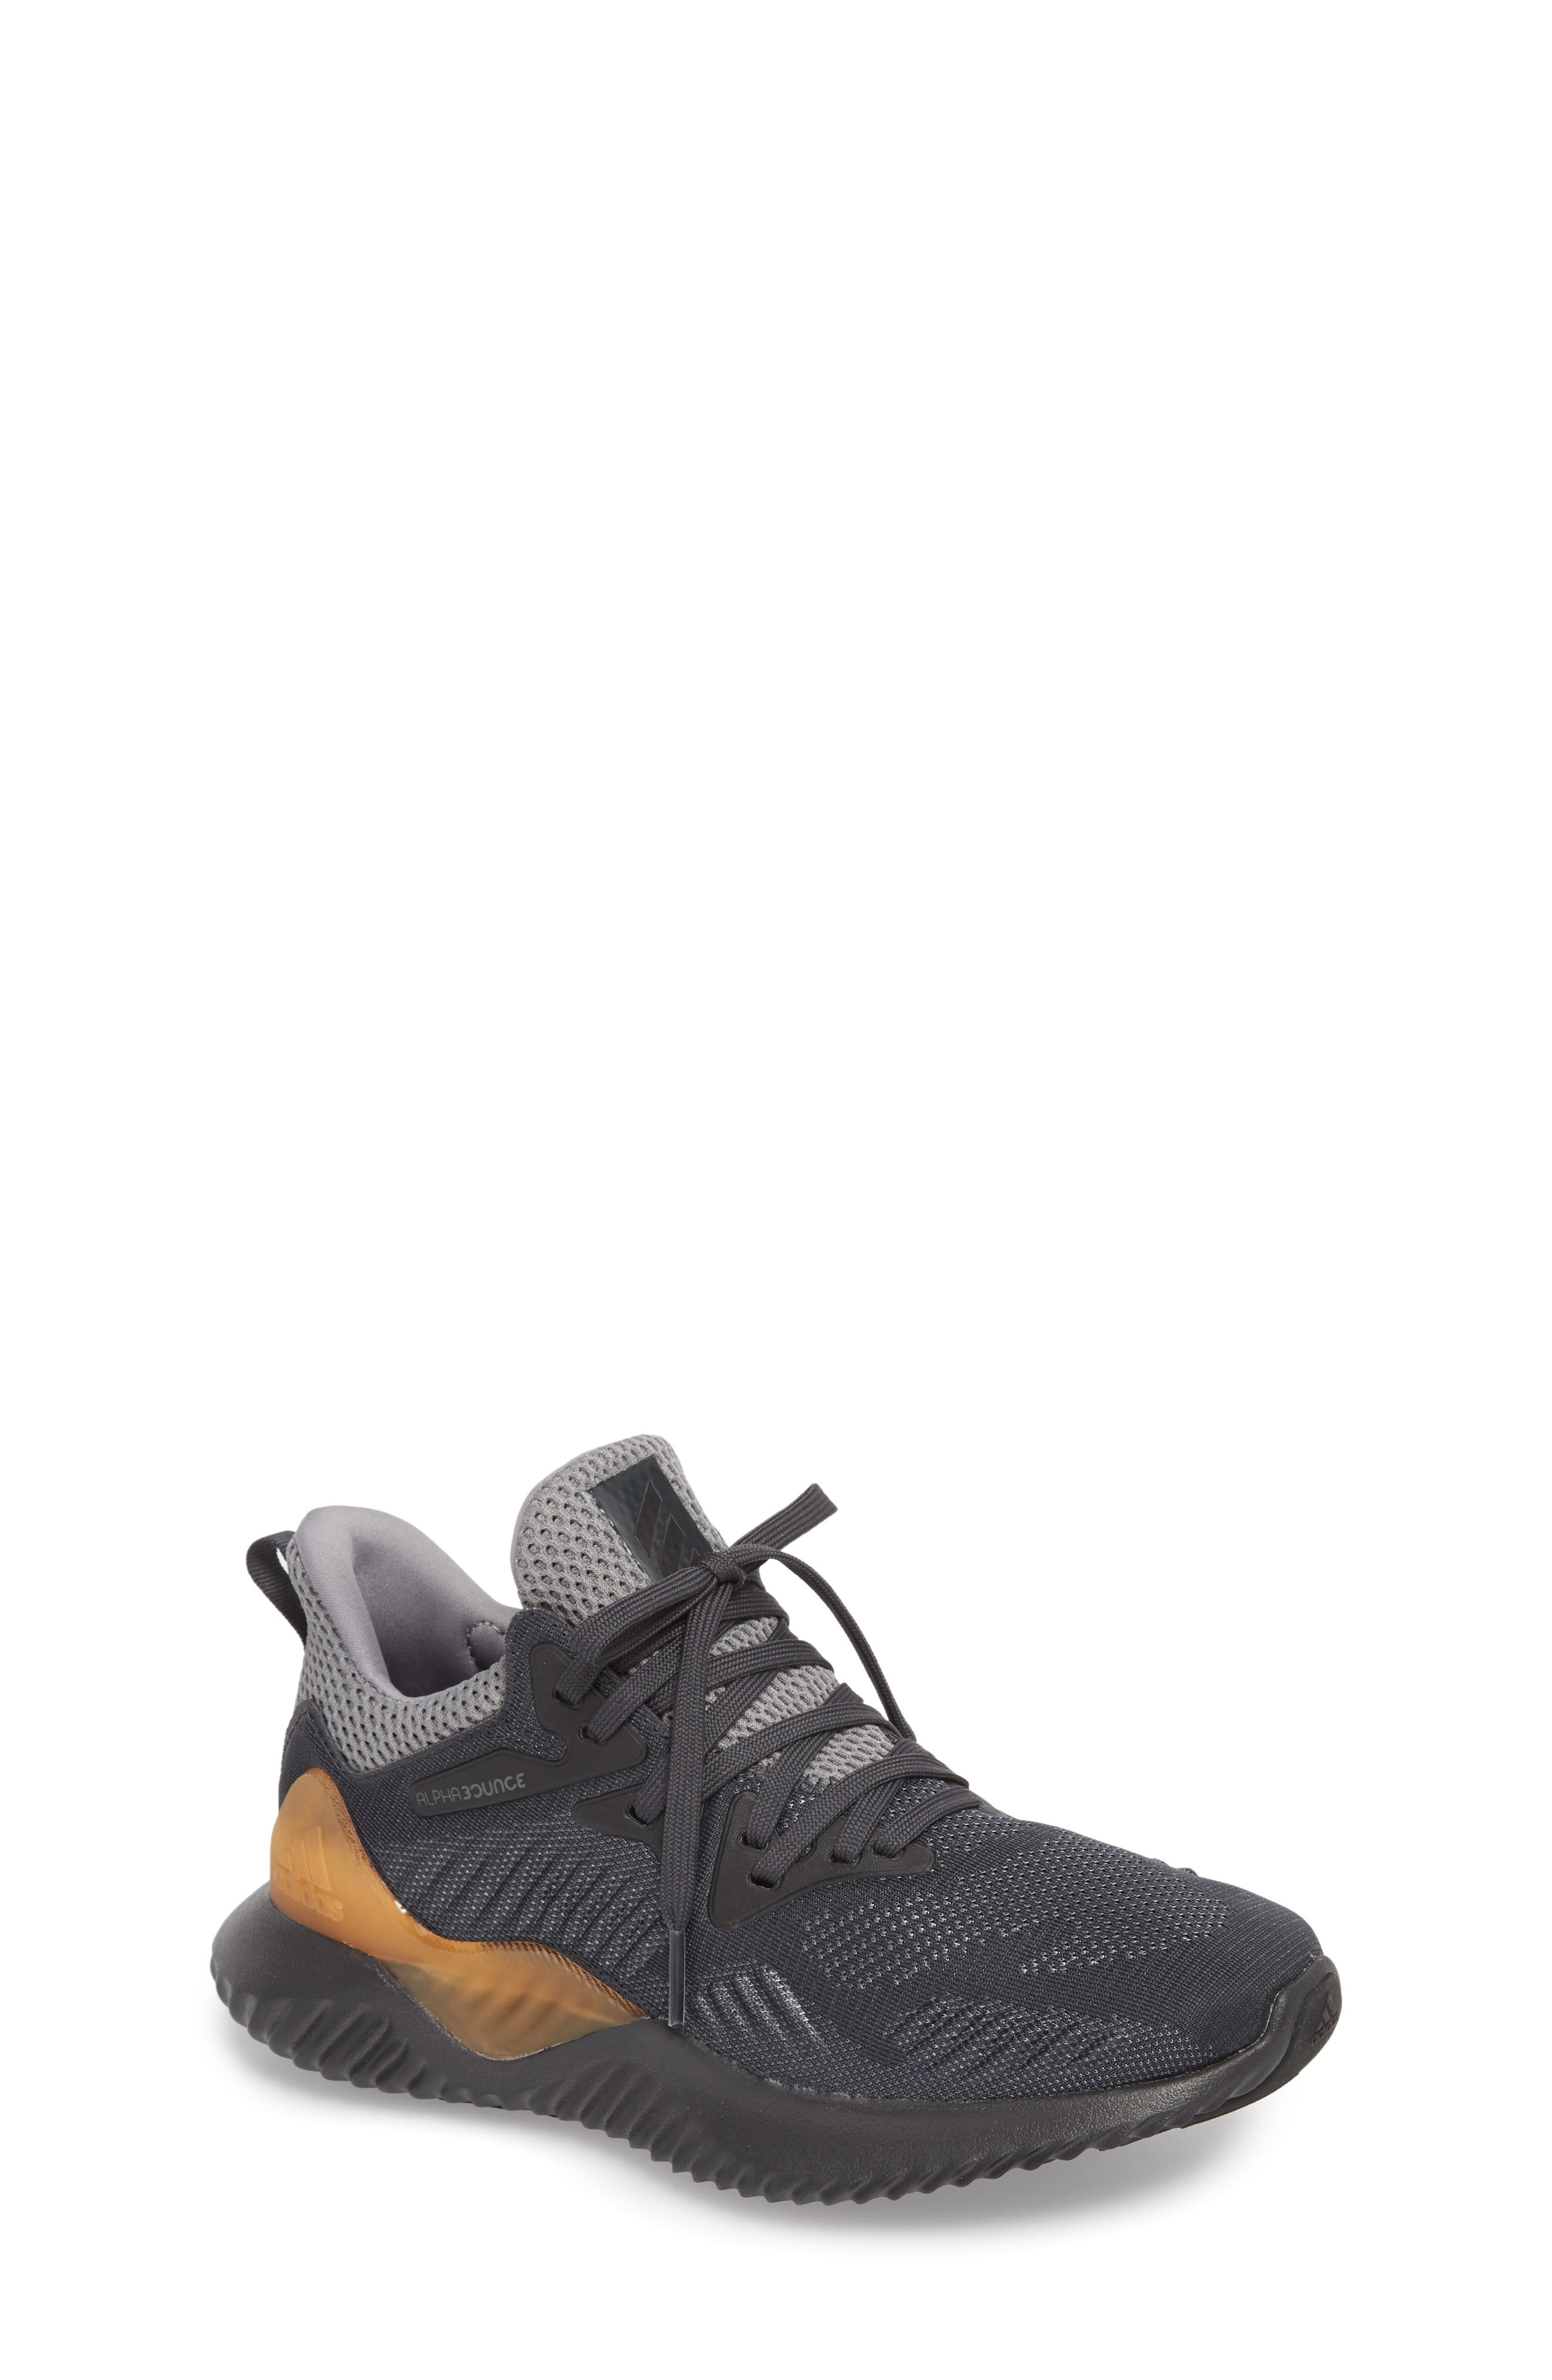 AlphaBounce Beyond Running Shoe,                             Main thumbnail 1, color,                             020